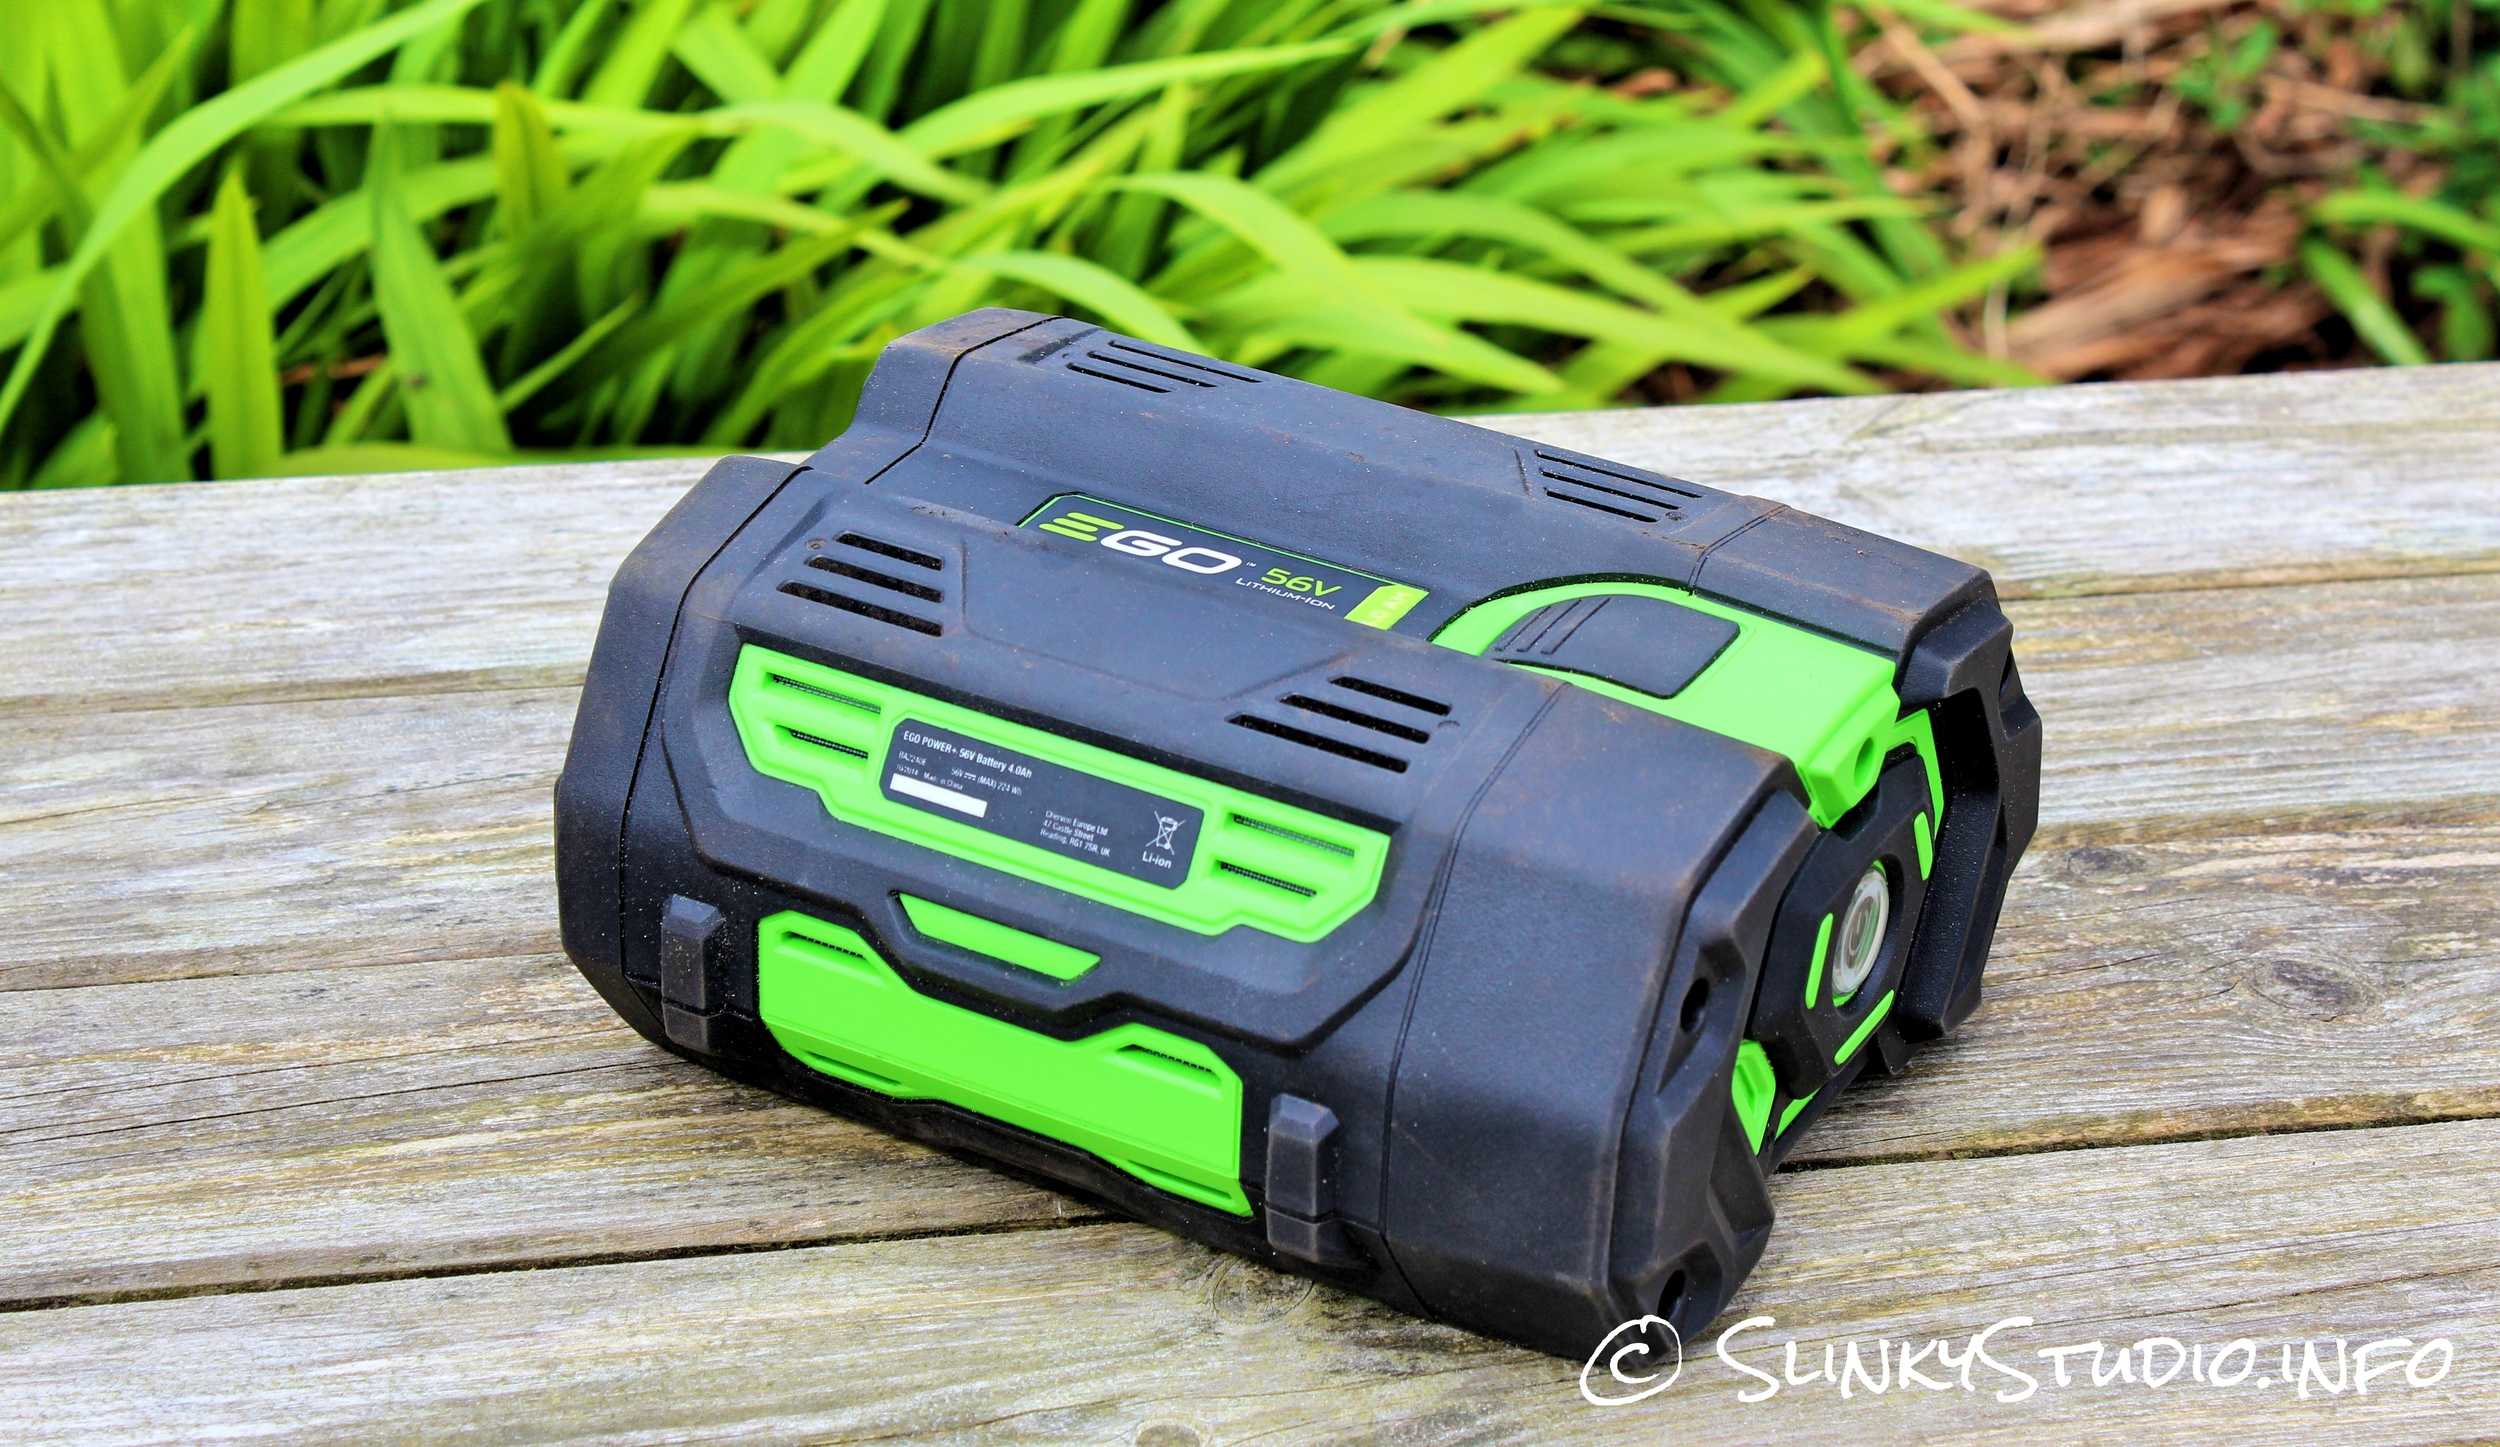 EGO Power+ Cordless Chainsaw Battery